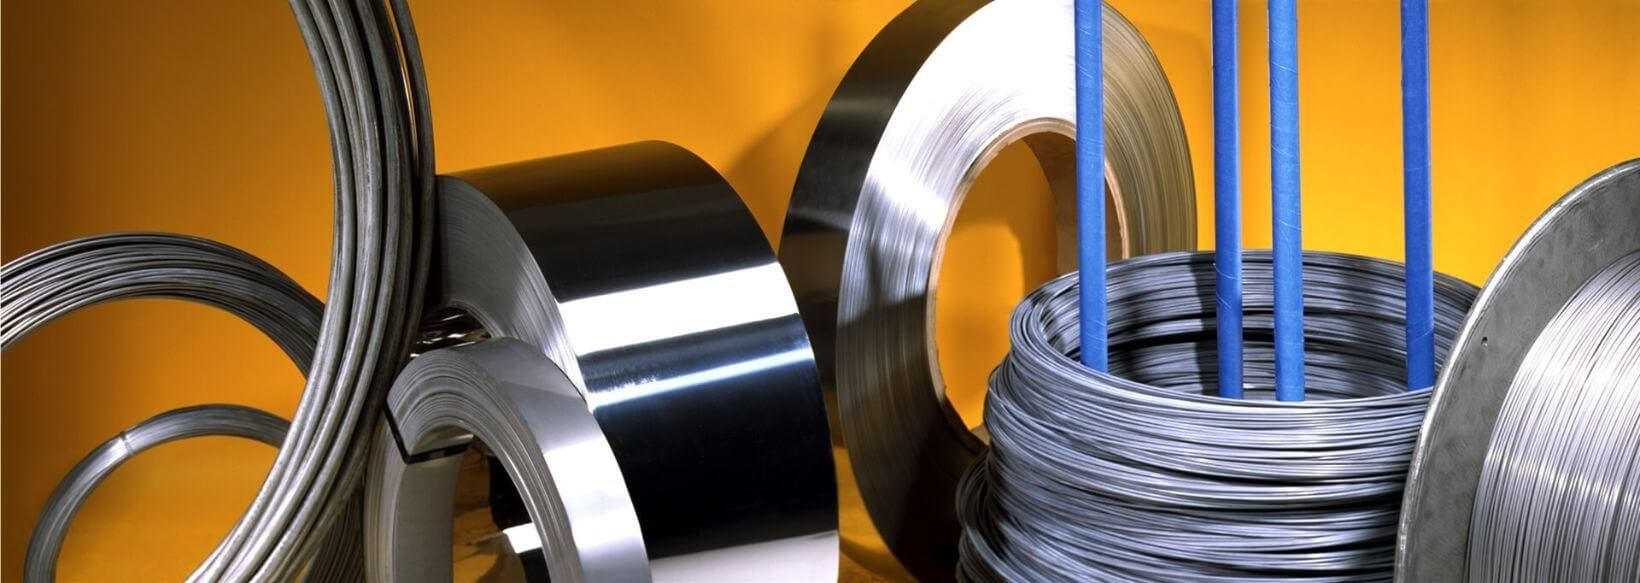 Standard and Custom Specialty Metals & Alloys Including High Performance Alloy Strip & Wire